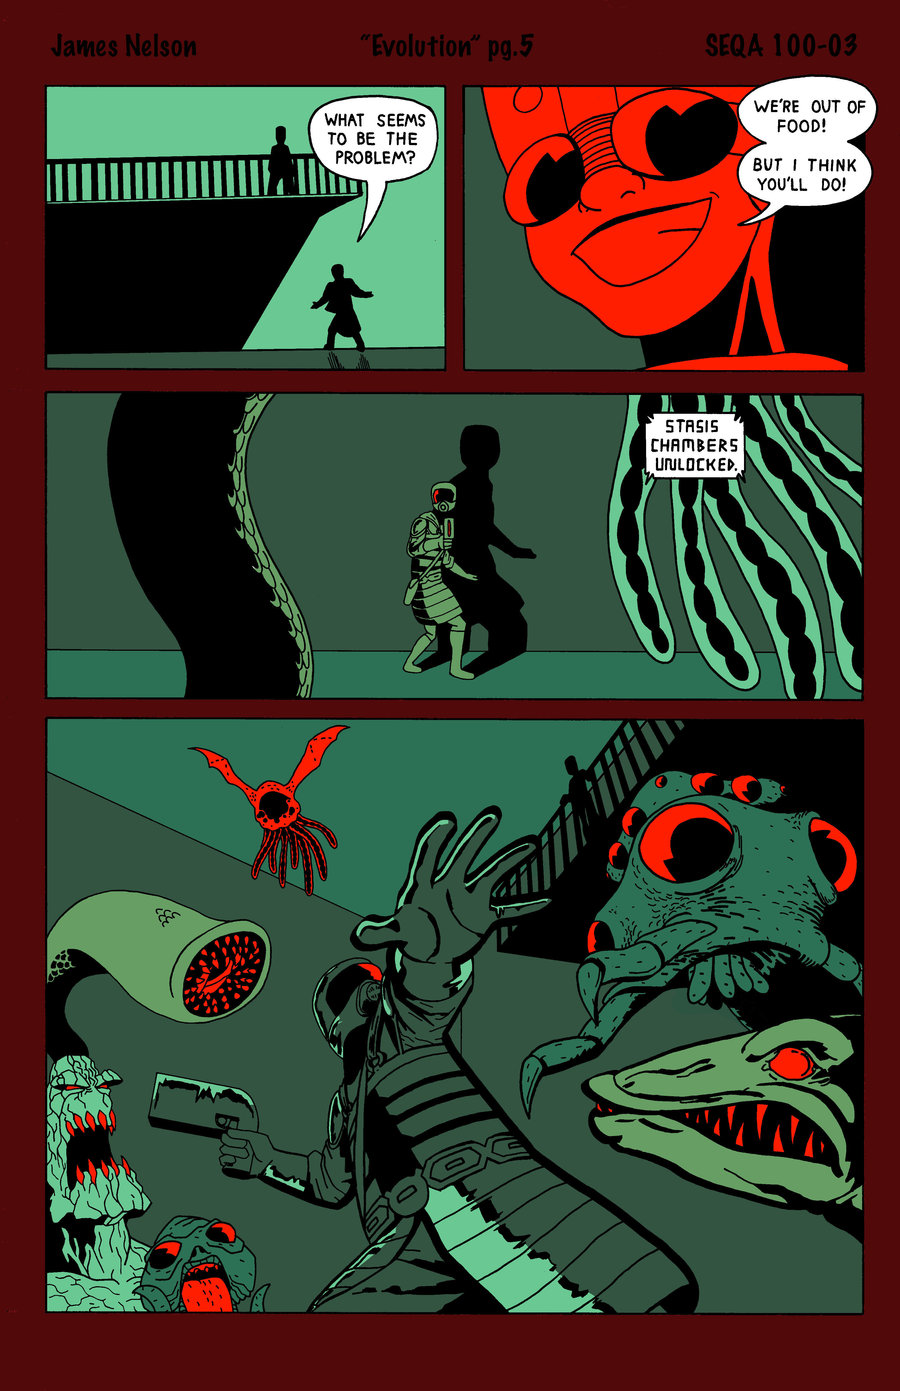 Evolution pg.5